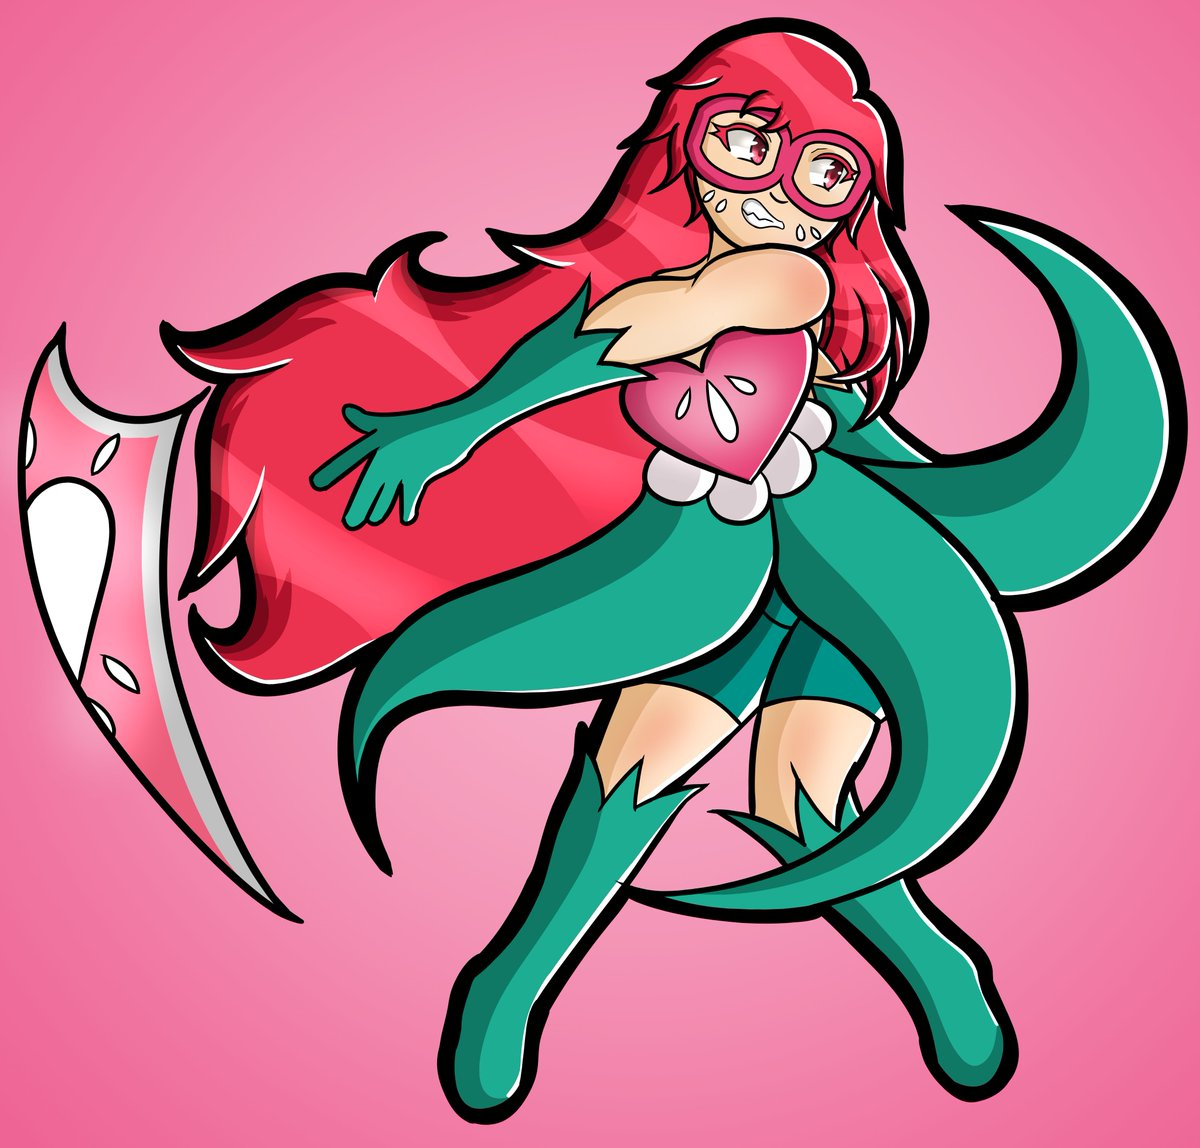 some fun art of my main character Strawberry, and for my potential webcomic and card game. #ocs  #strawberry #superheroes pic.twitter.com/R7jp6AZHck